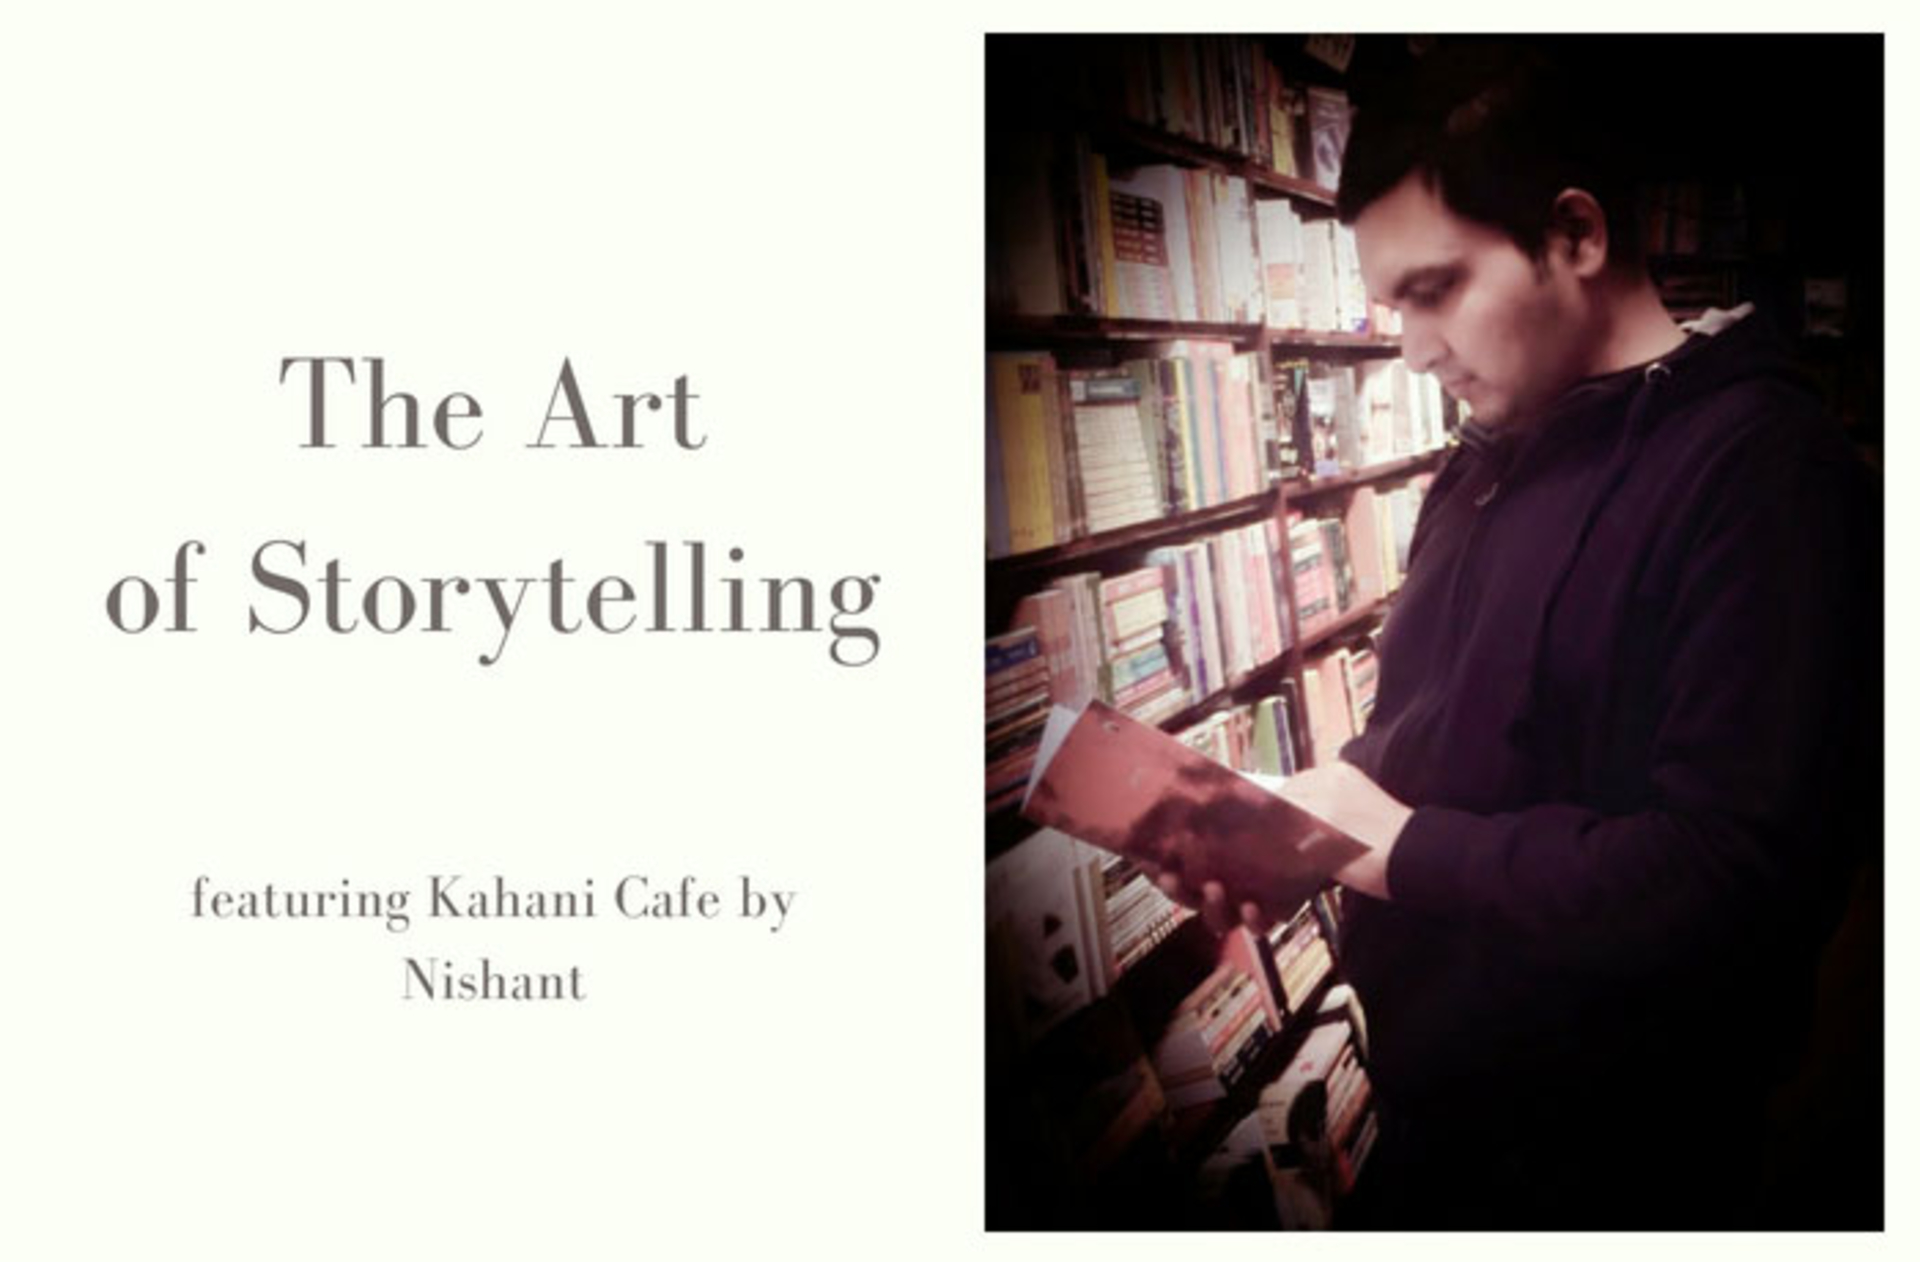 The Art of Storytelling - Kahani Cafe by Nishant image